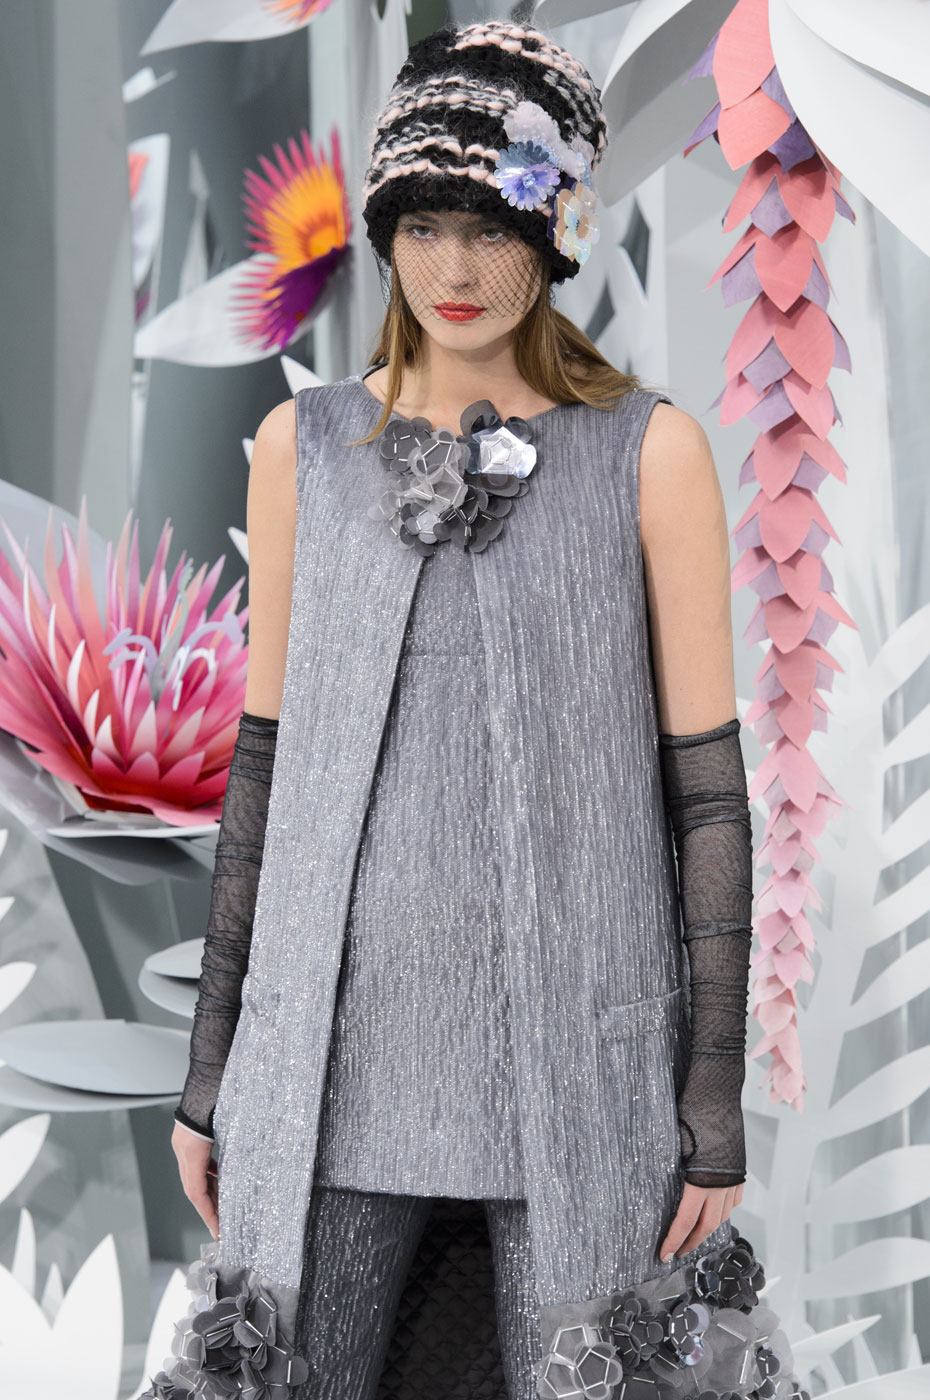 Chanel-fashion-runway-show-haute-couture-paris-spring-summer-2015-the-impression-110